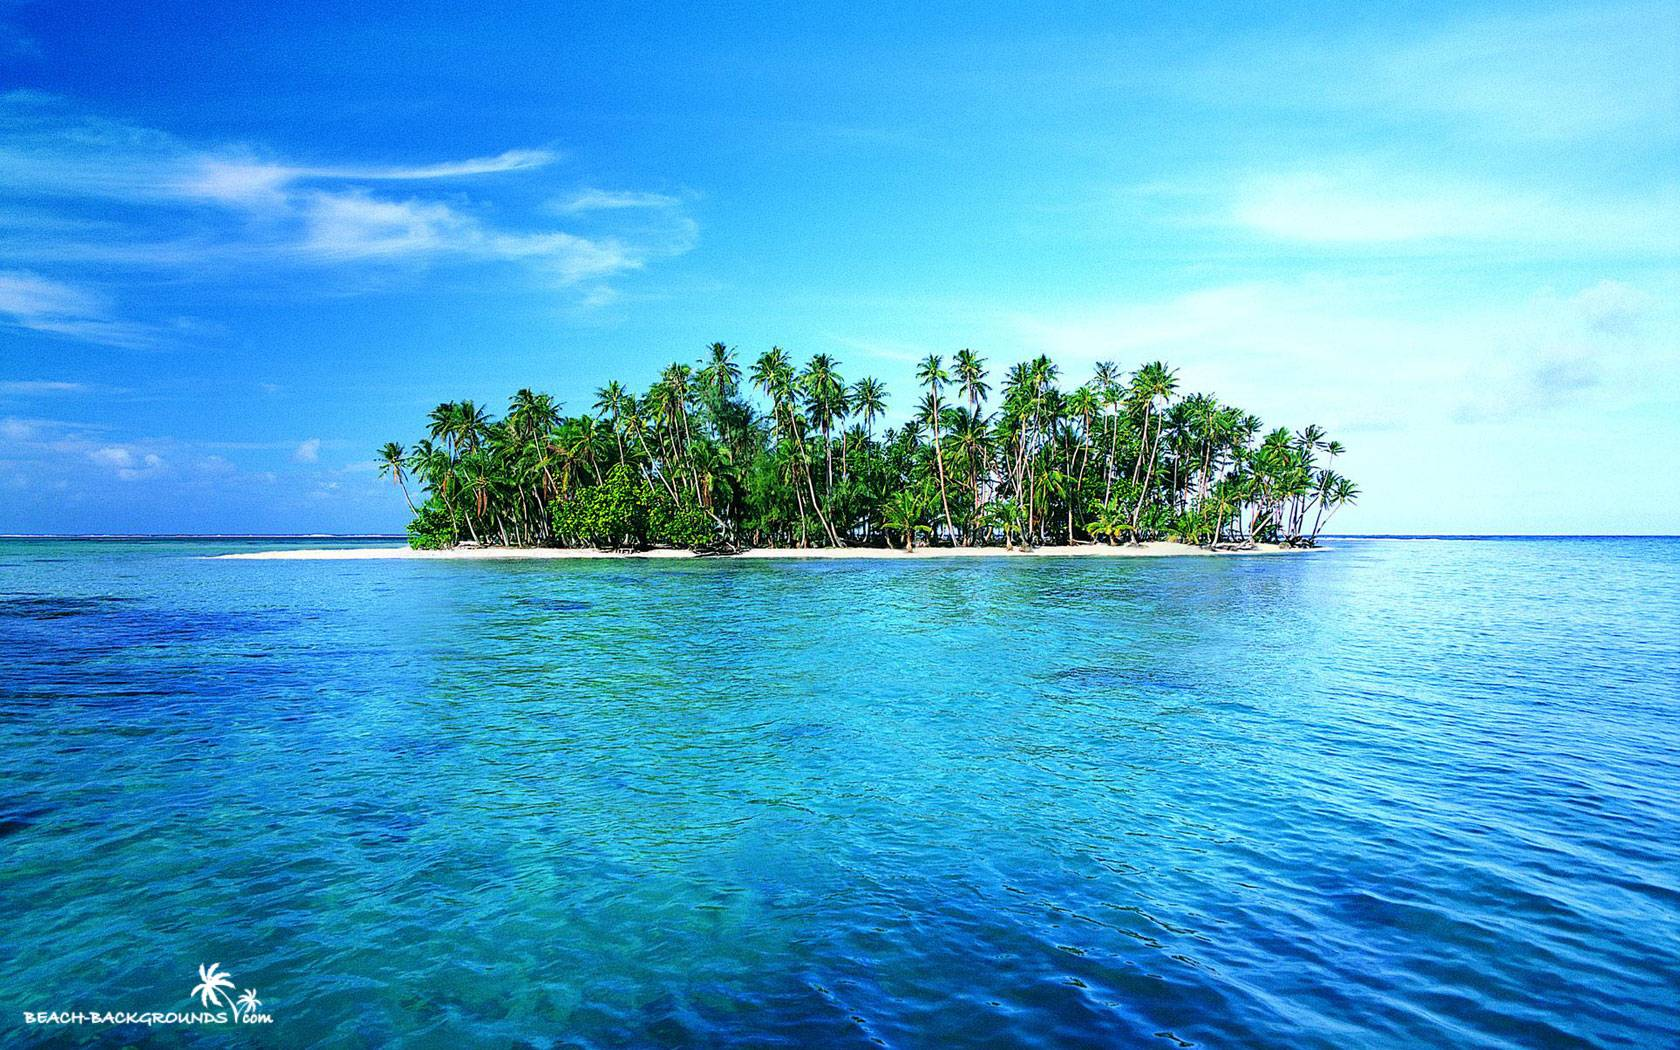 Island Green Tropic Palms White Lonely Backrounds Wallpapers 595